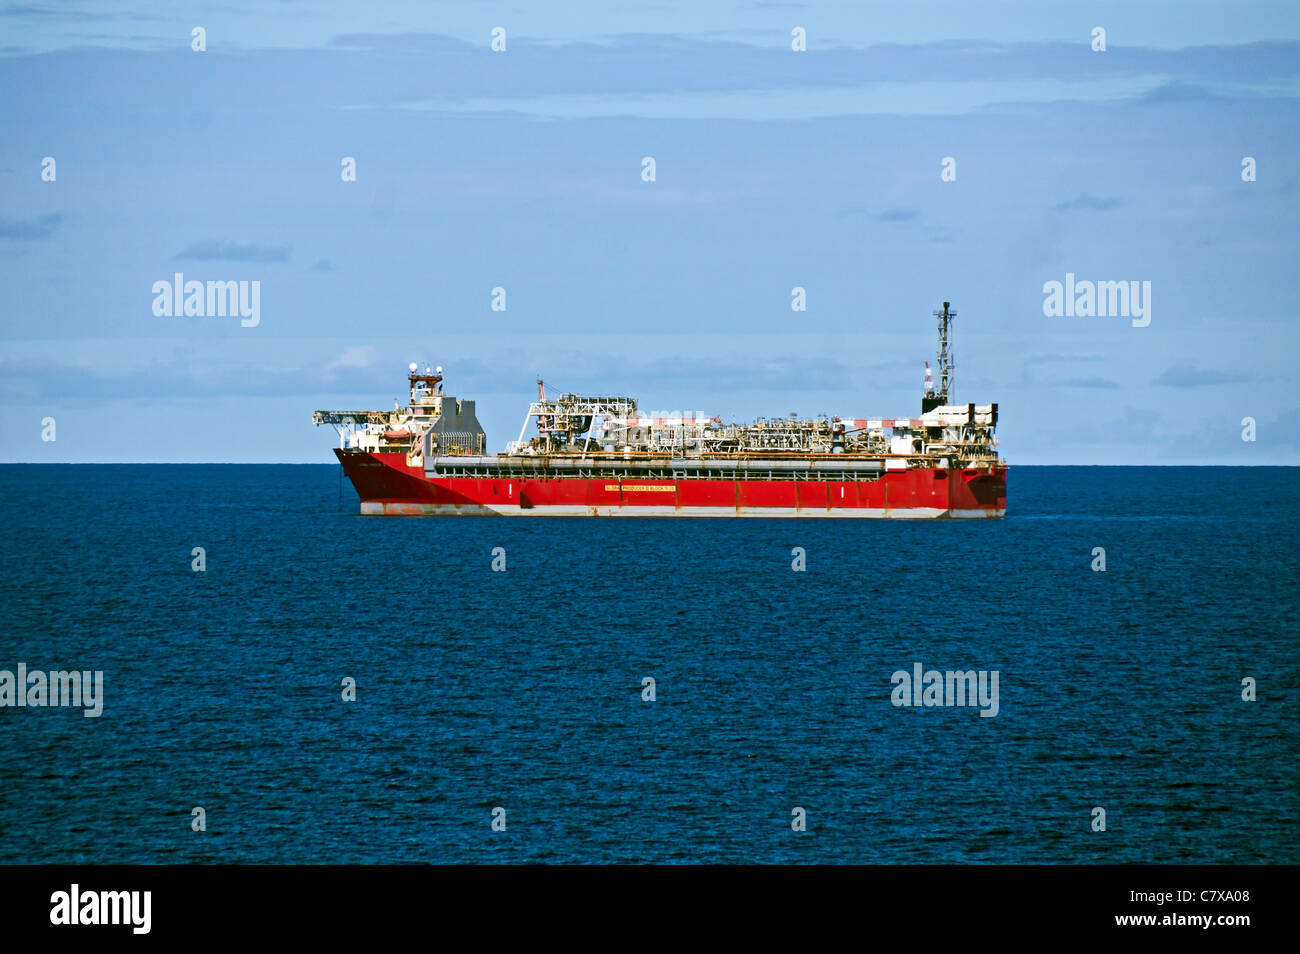 Maersk Oil UK Ltd owned Global Producer 3 vessel anchored in the British section of the North Sea - Stock Image